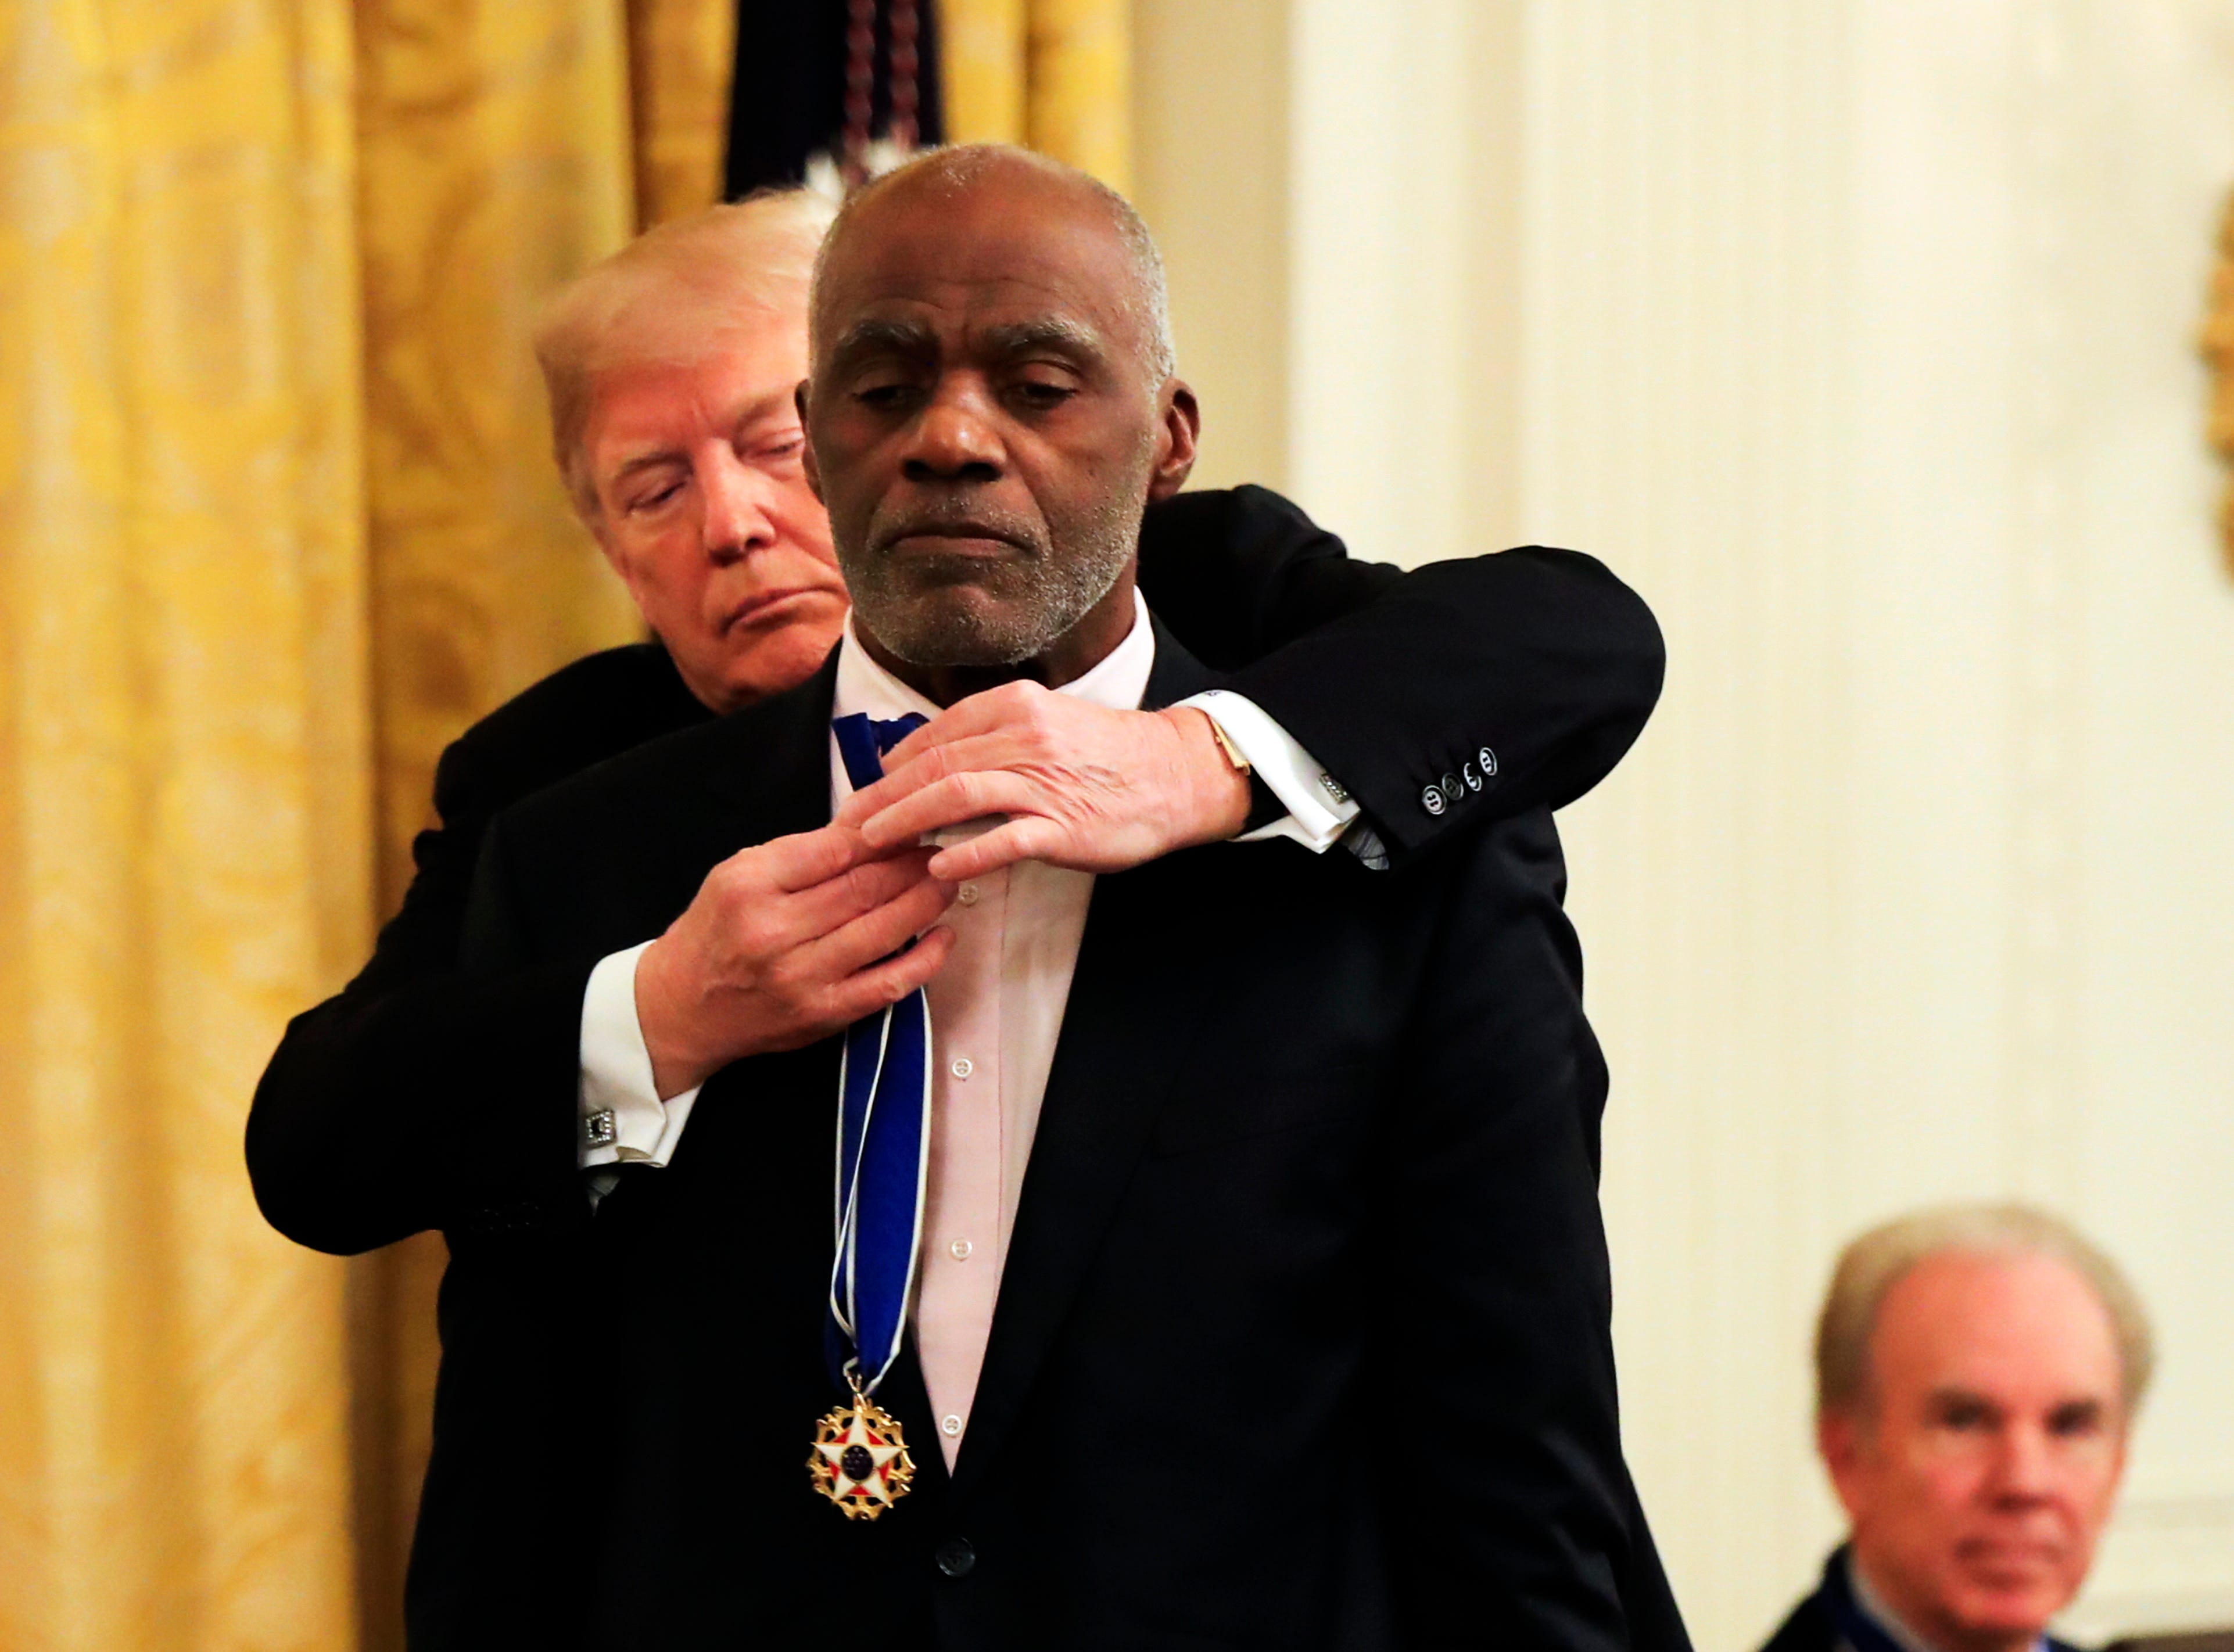 President Donald Trump presents the Presidential Medal of Freedom to retired Minnesota Supreme Court Justice Alan Page during a ceremony in the East Room of the White House, in Washington, D.C., on Friday, Nov. 16, 2018.